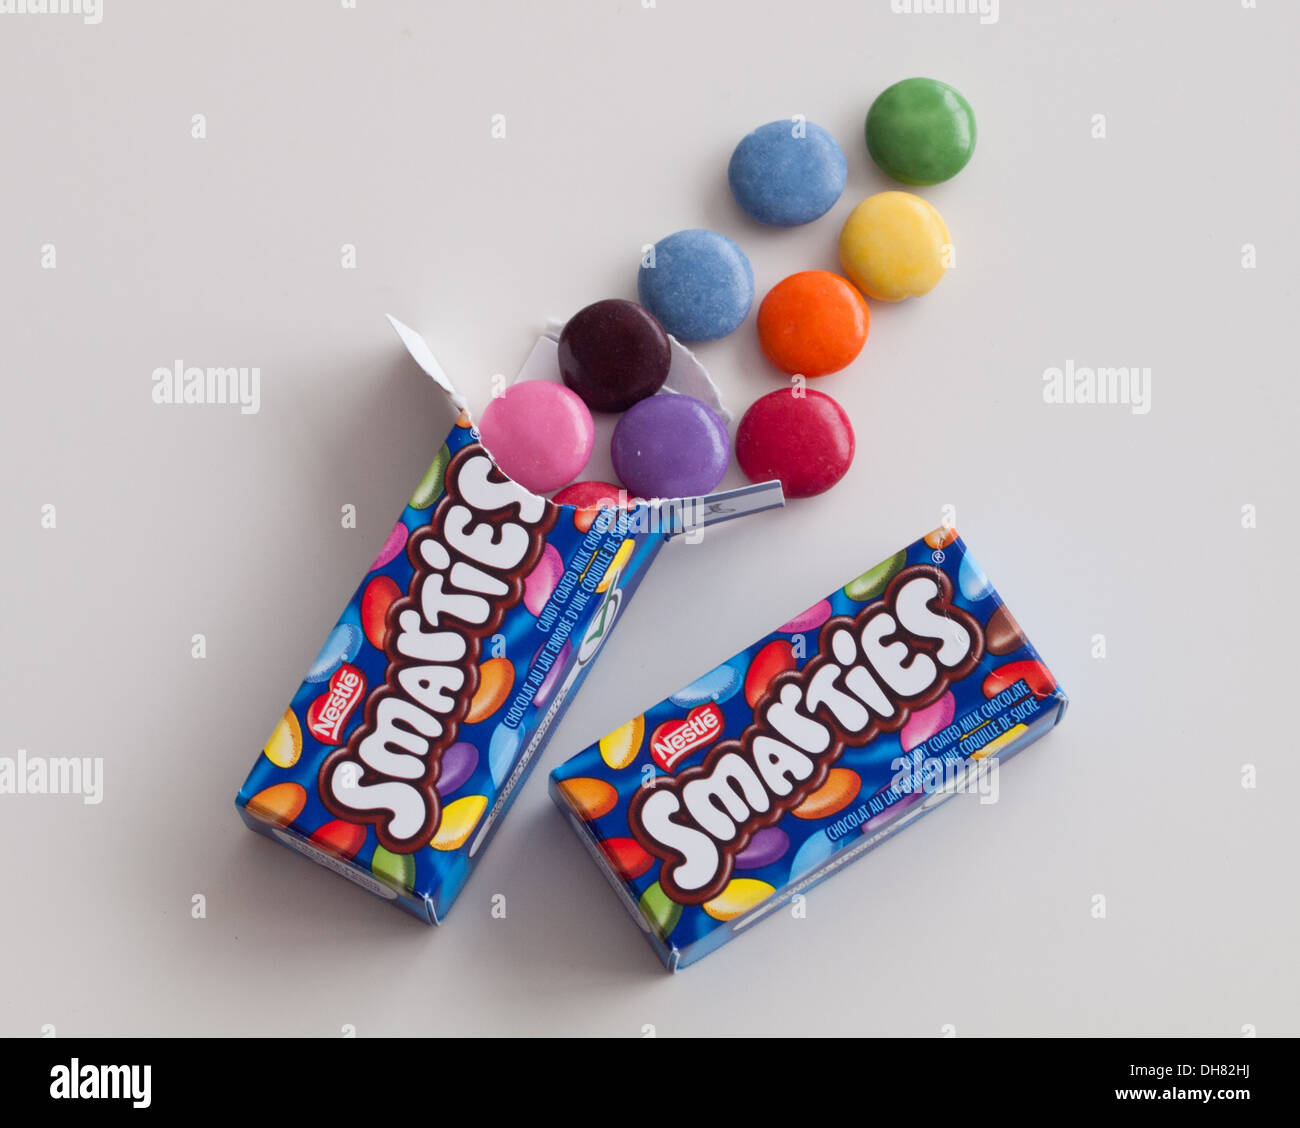 Image result for royalty free images smarties chocolate